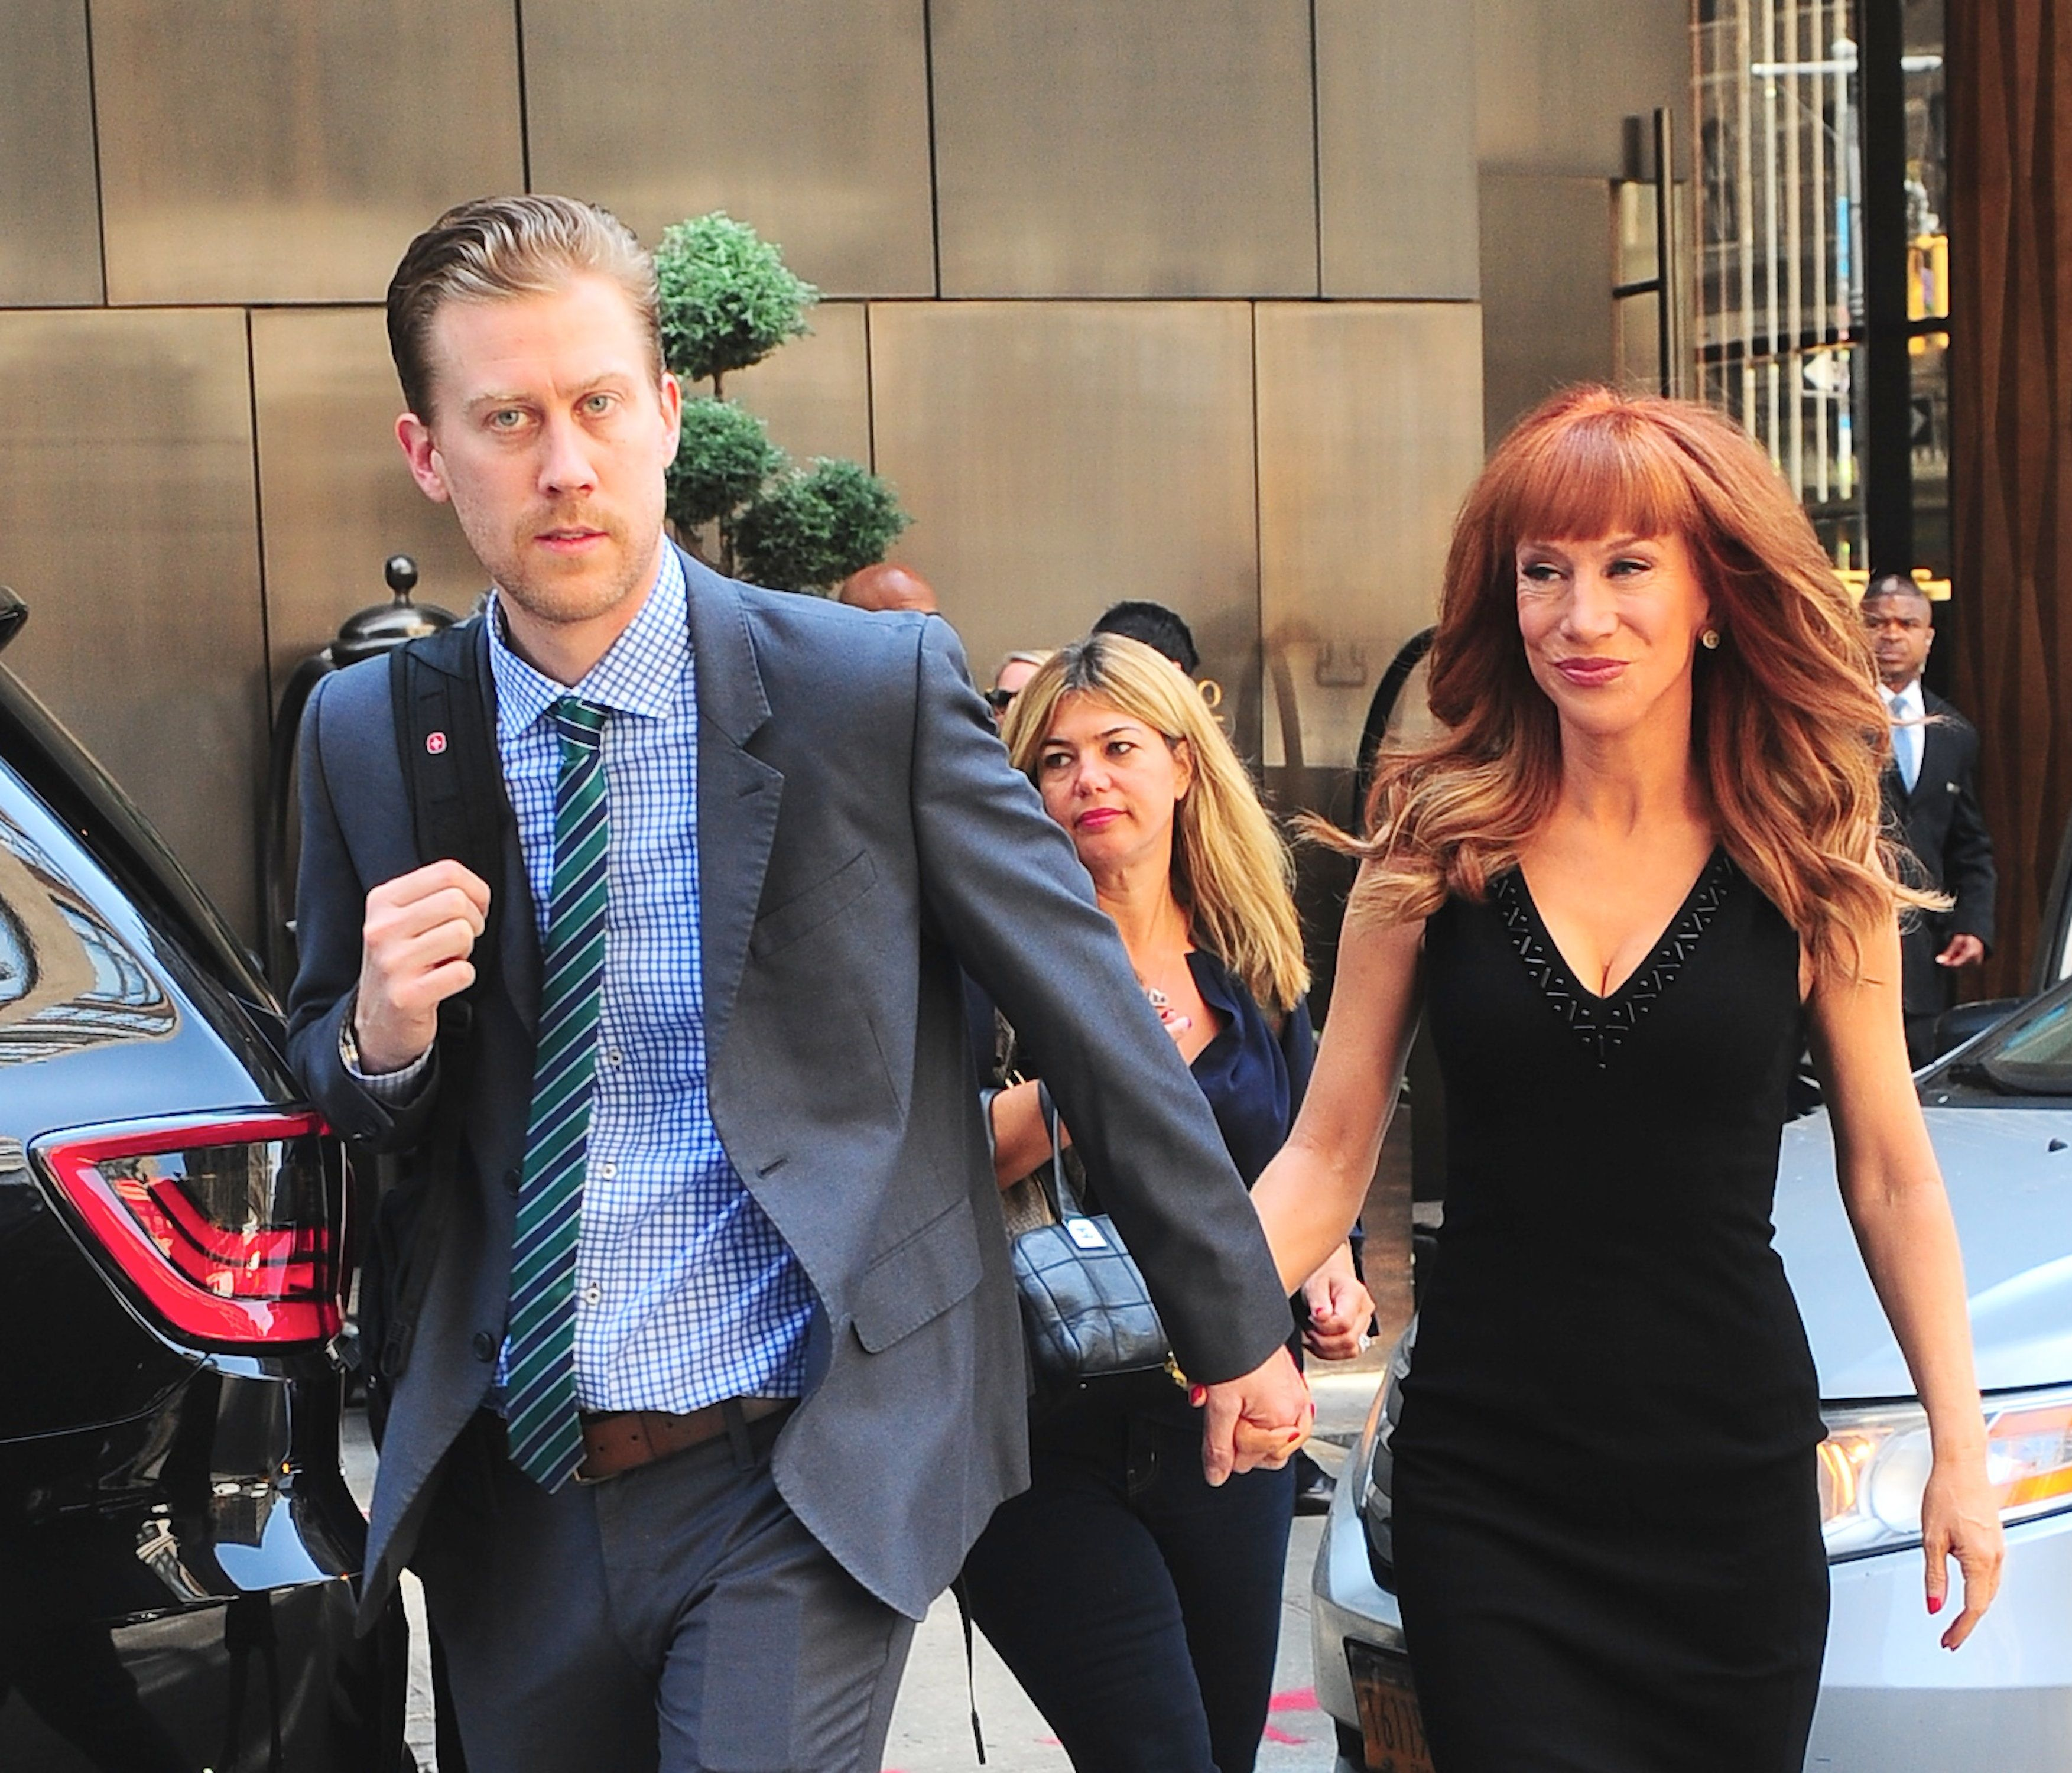 NEW YORK, NY - AUGUST 20: Randy Bick and Kathy Griffin are seen in Soho on August 20, 2014 in New York City.  (Photo by Raymond Hall/GC Images)